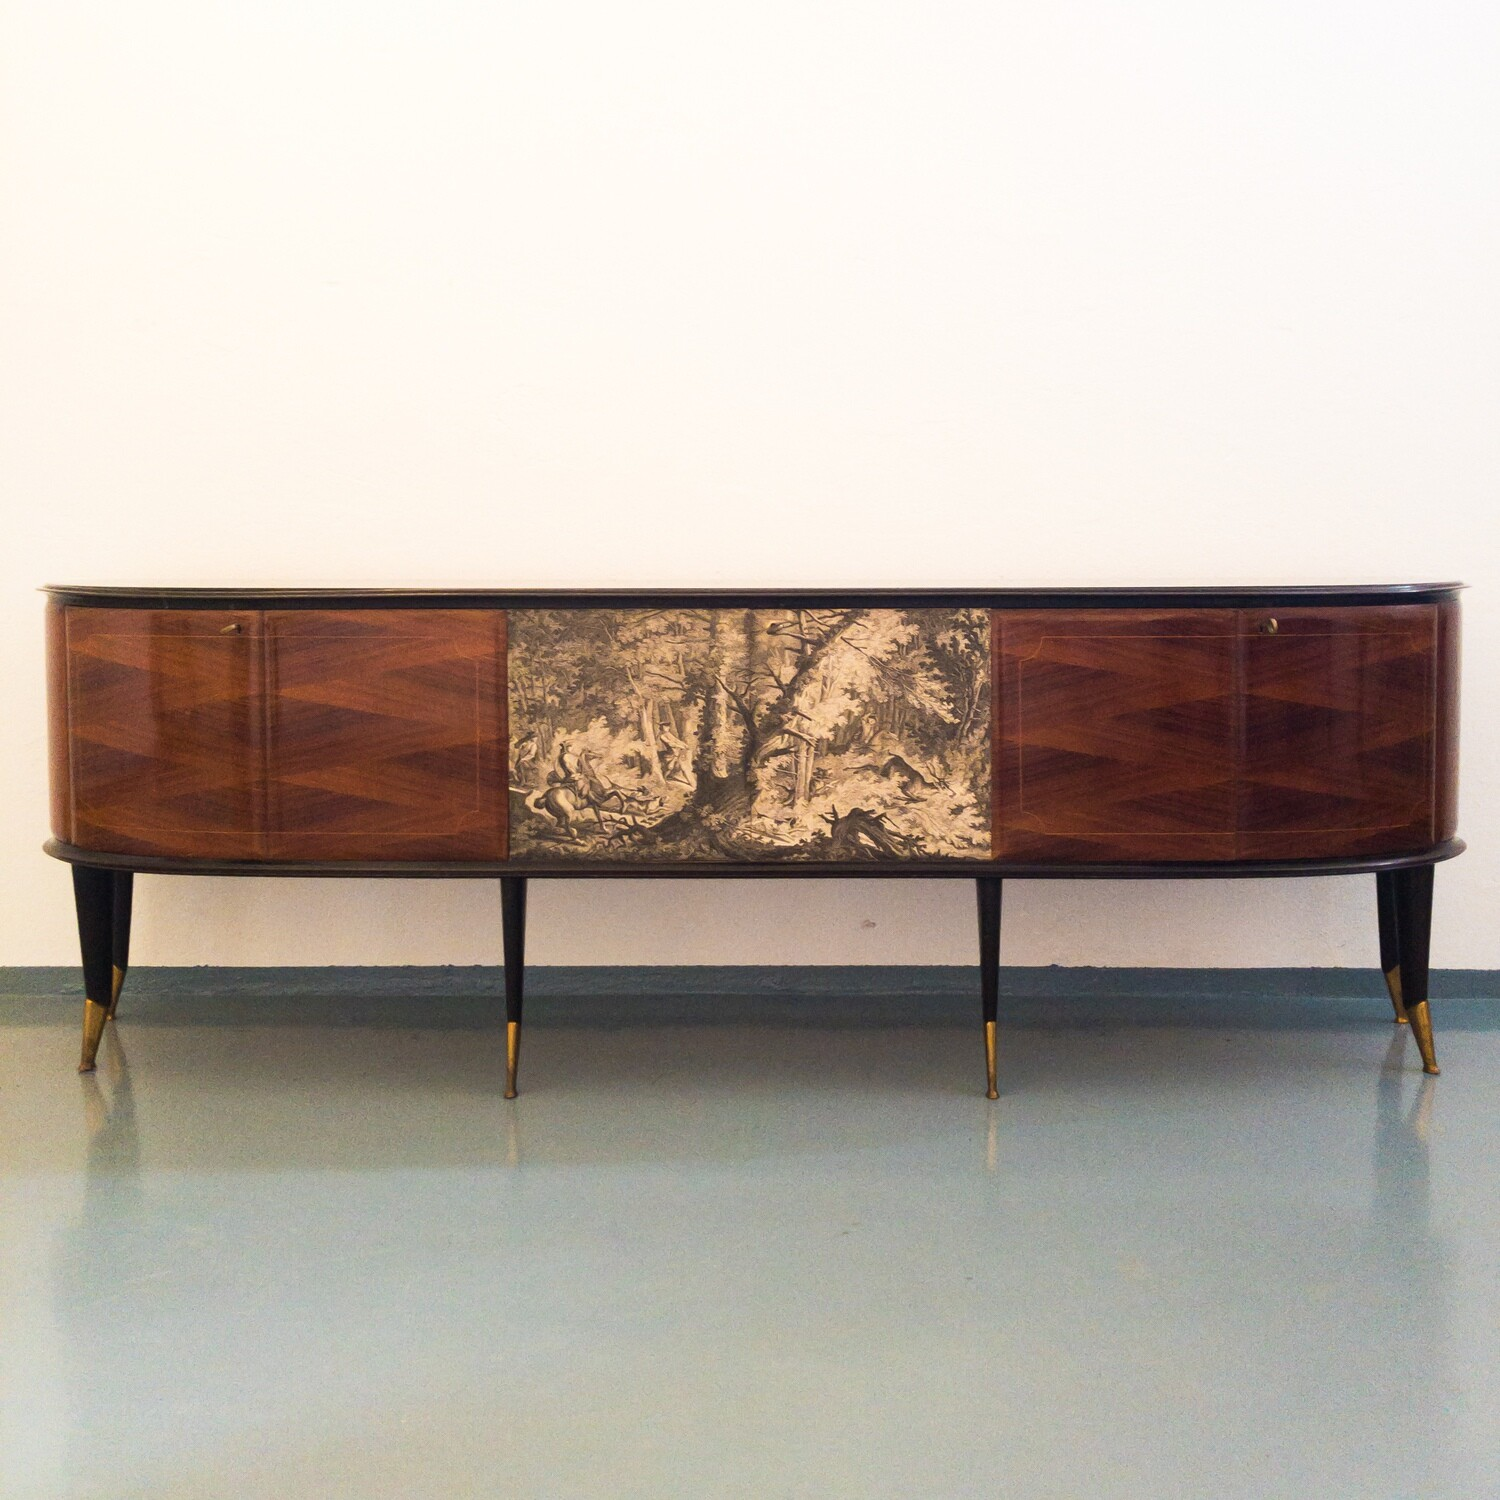 Italy sideboard, 1950s